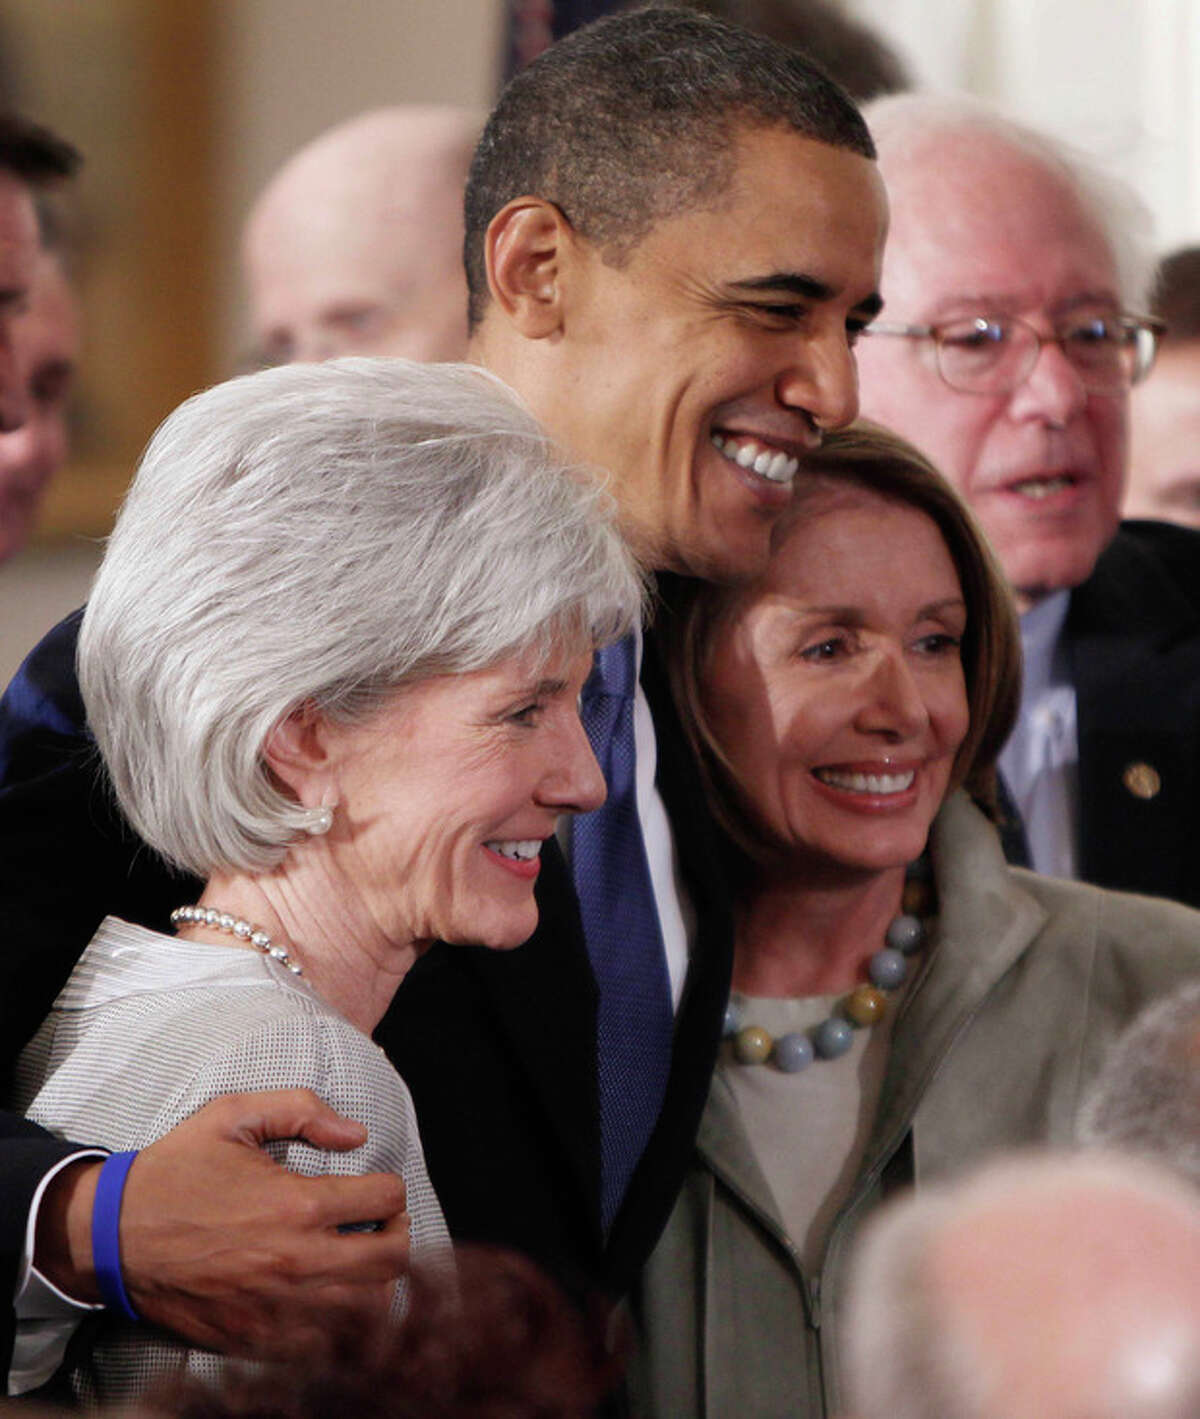 FILE - In a March 23, 2010, file photo President Barack Obama embraces Health and Human Services Secretary Kathleen Sebelius, left, and House Speaker Nancy Pelosi of Calif. in the East Room of the White House in Washington after he signed the health care bill. Obama and Pelosi devoted a vast amount of his first term to passing a health care law that has divided the nation. By winning at the Supreme Court, Obama and his party preserve historic legislation, that liberals have been pining for for more than 50 years. (AP Photo/Charles Dharapak, File)